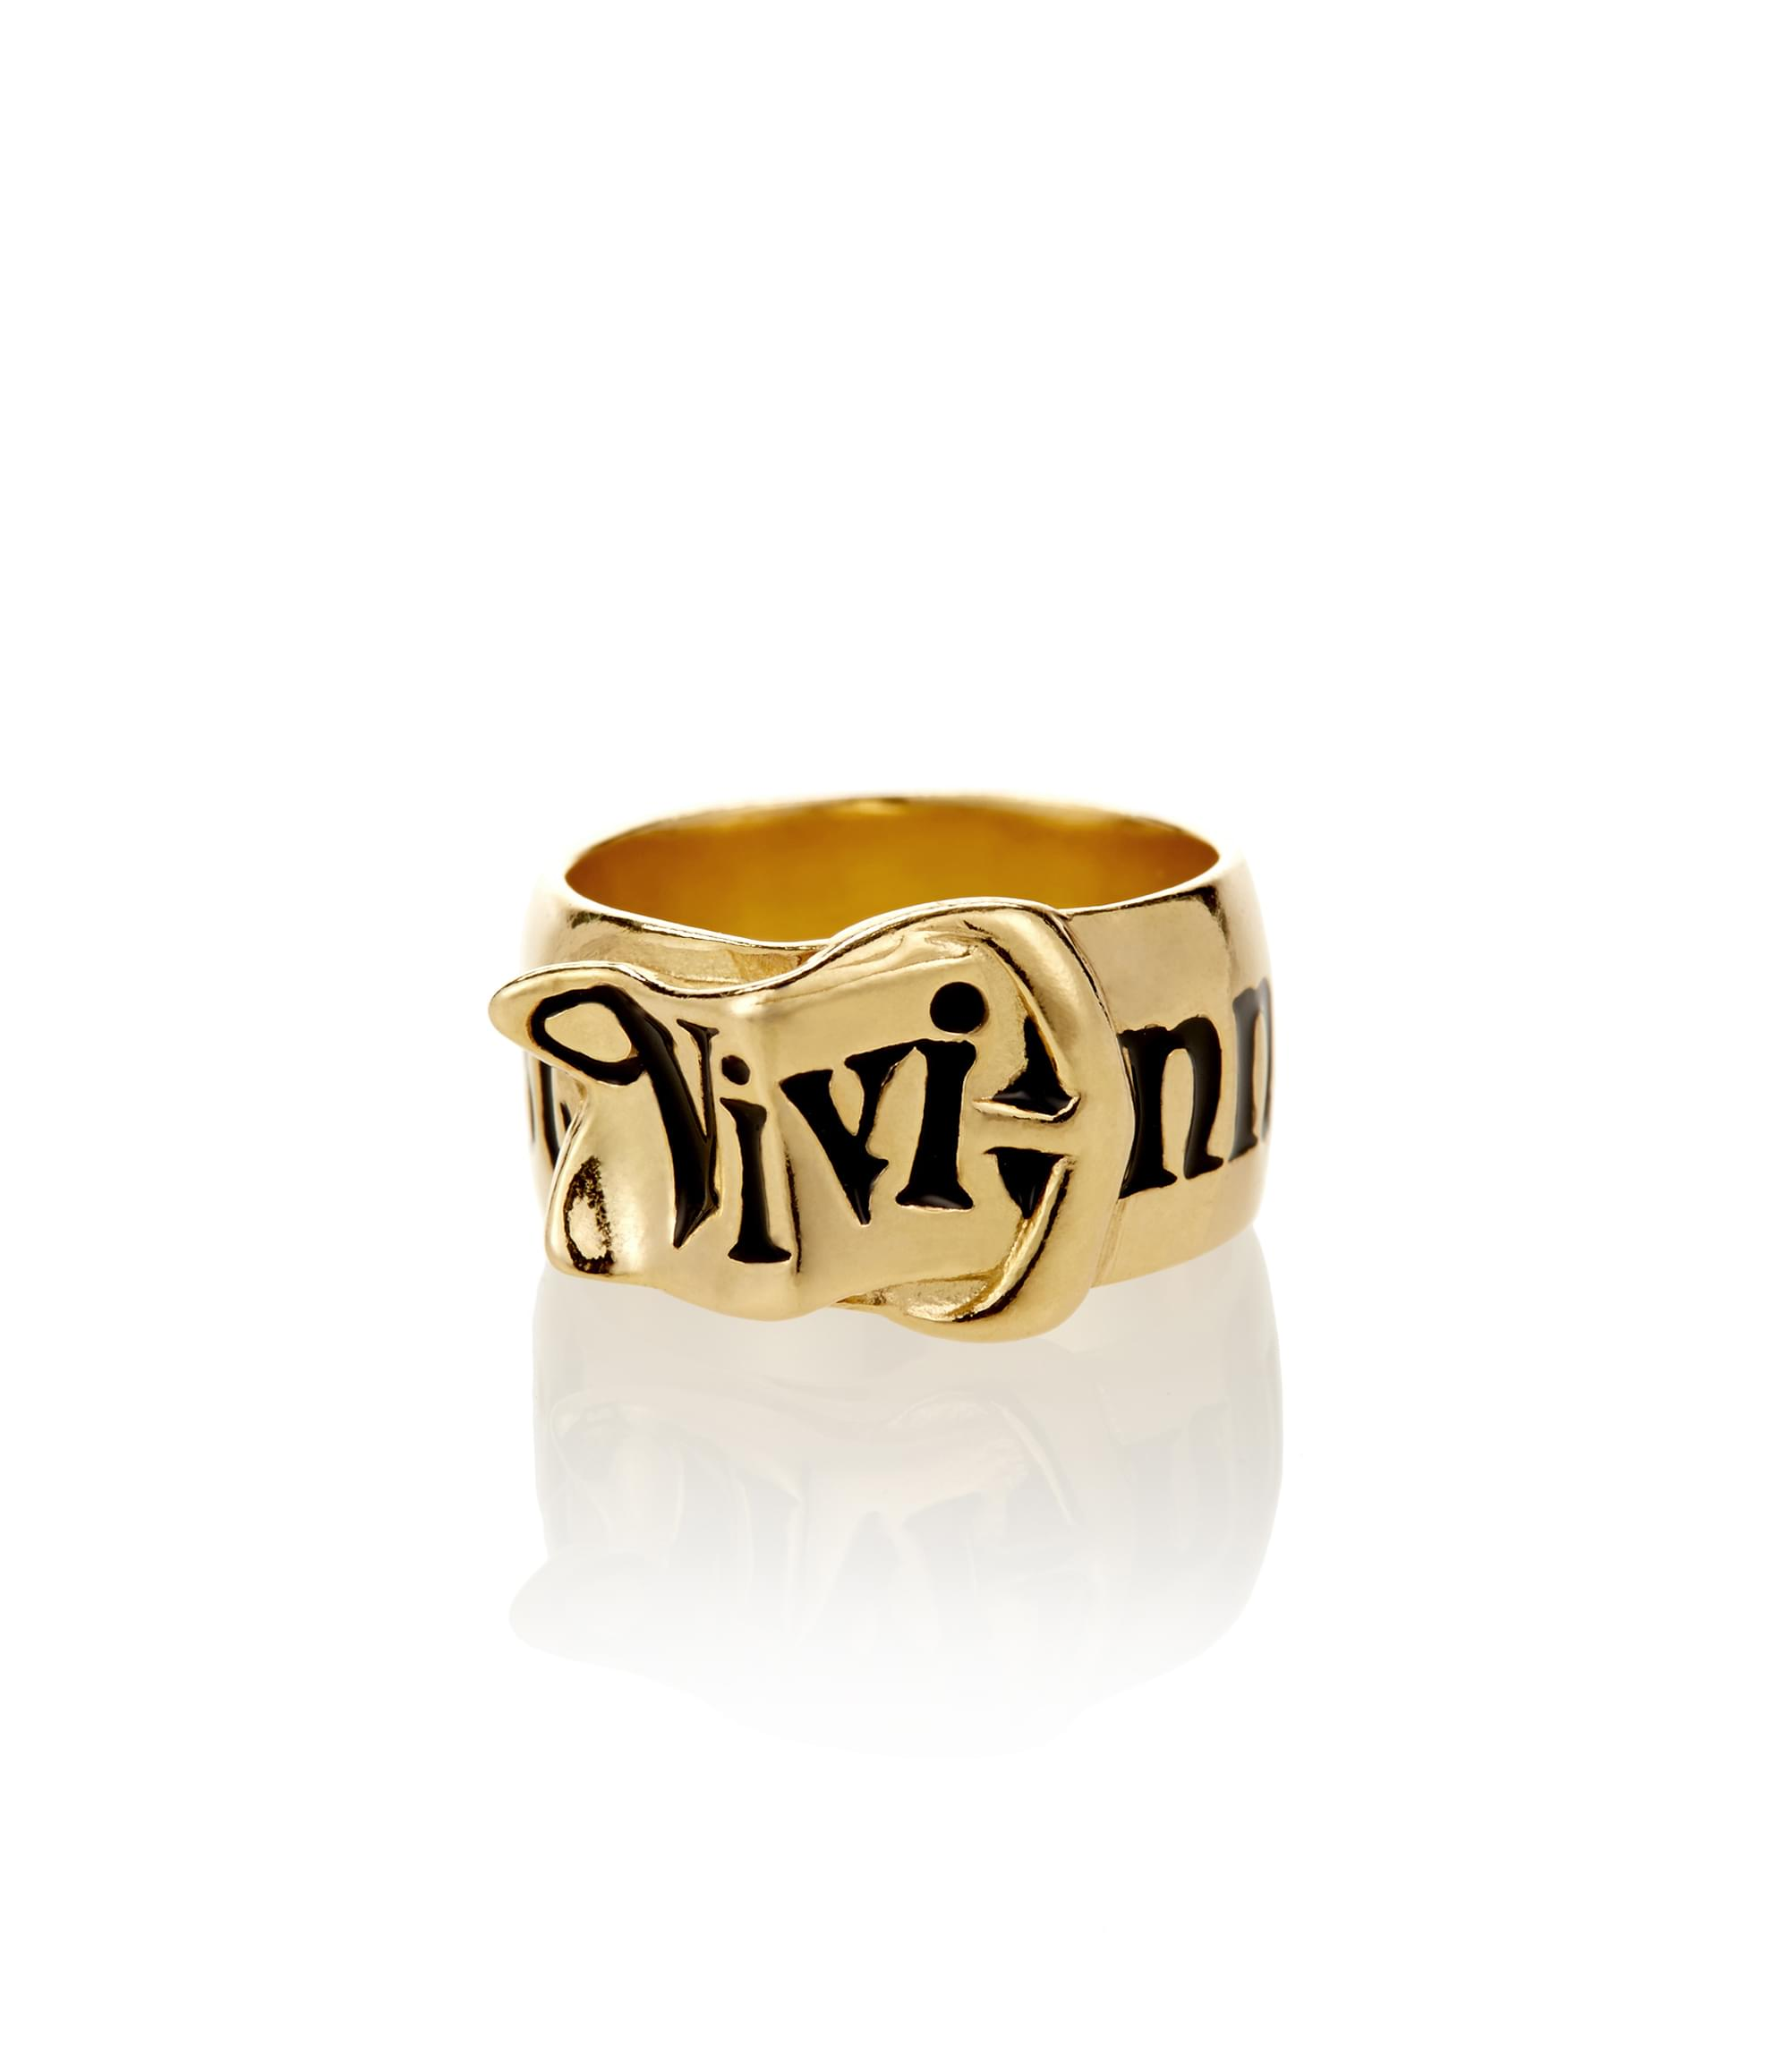 Vivienne Westwood Gold Belt Ring